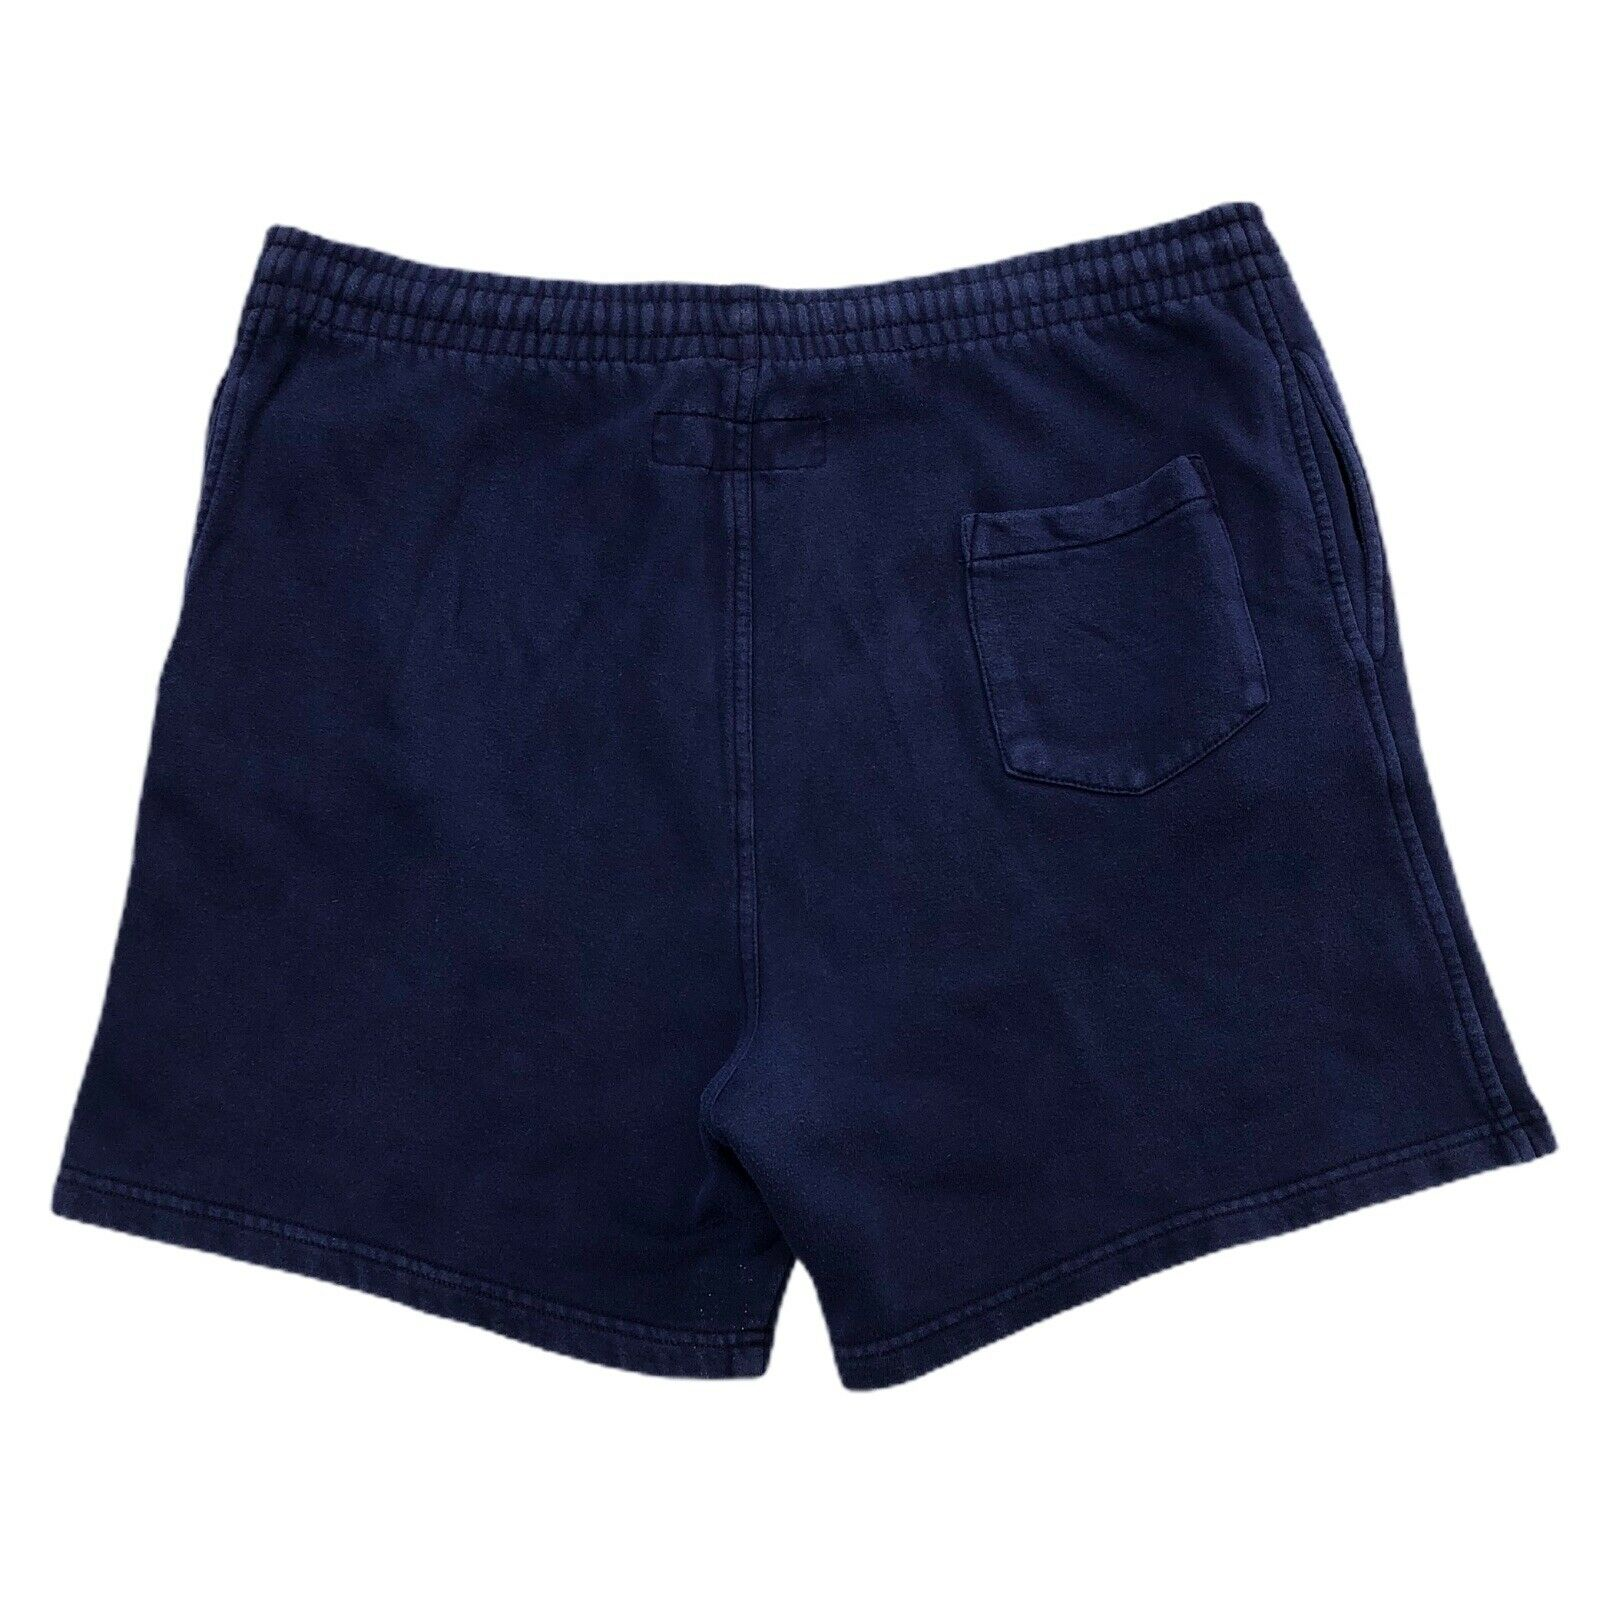 Vintage 90s B.U.M. Equipment Shorts navy blue Swe… - image 2